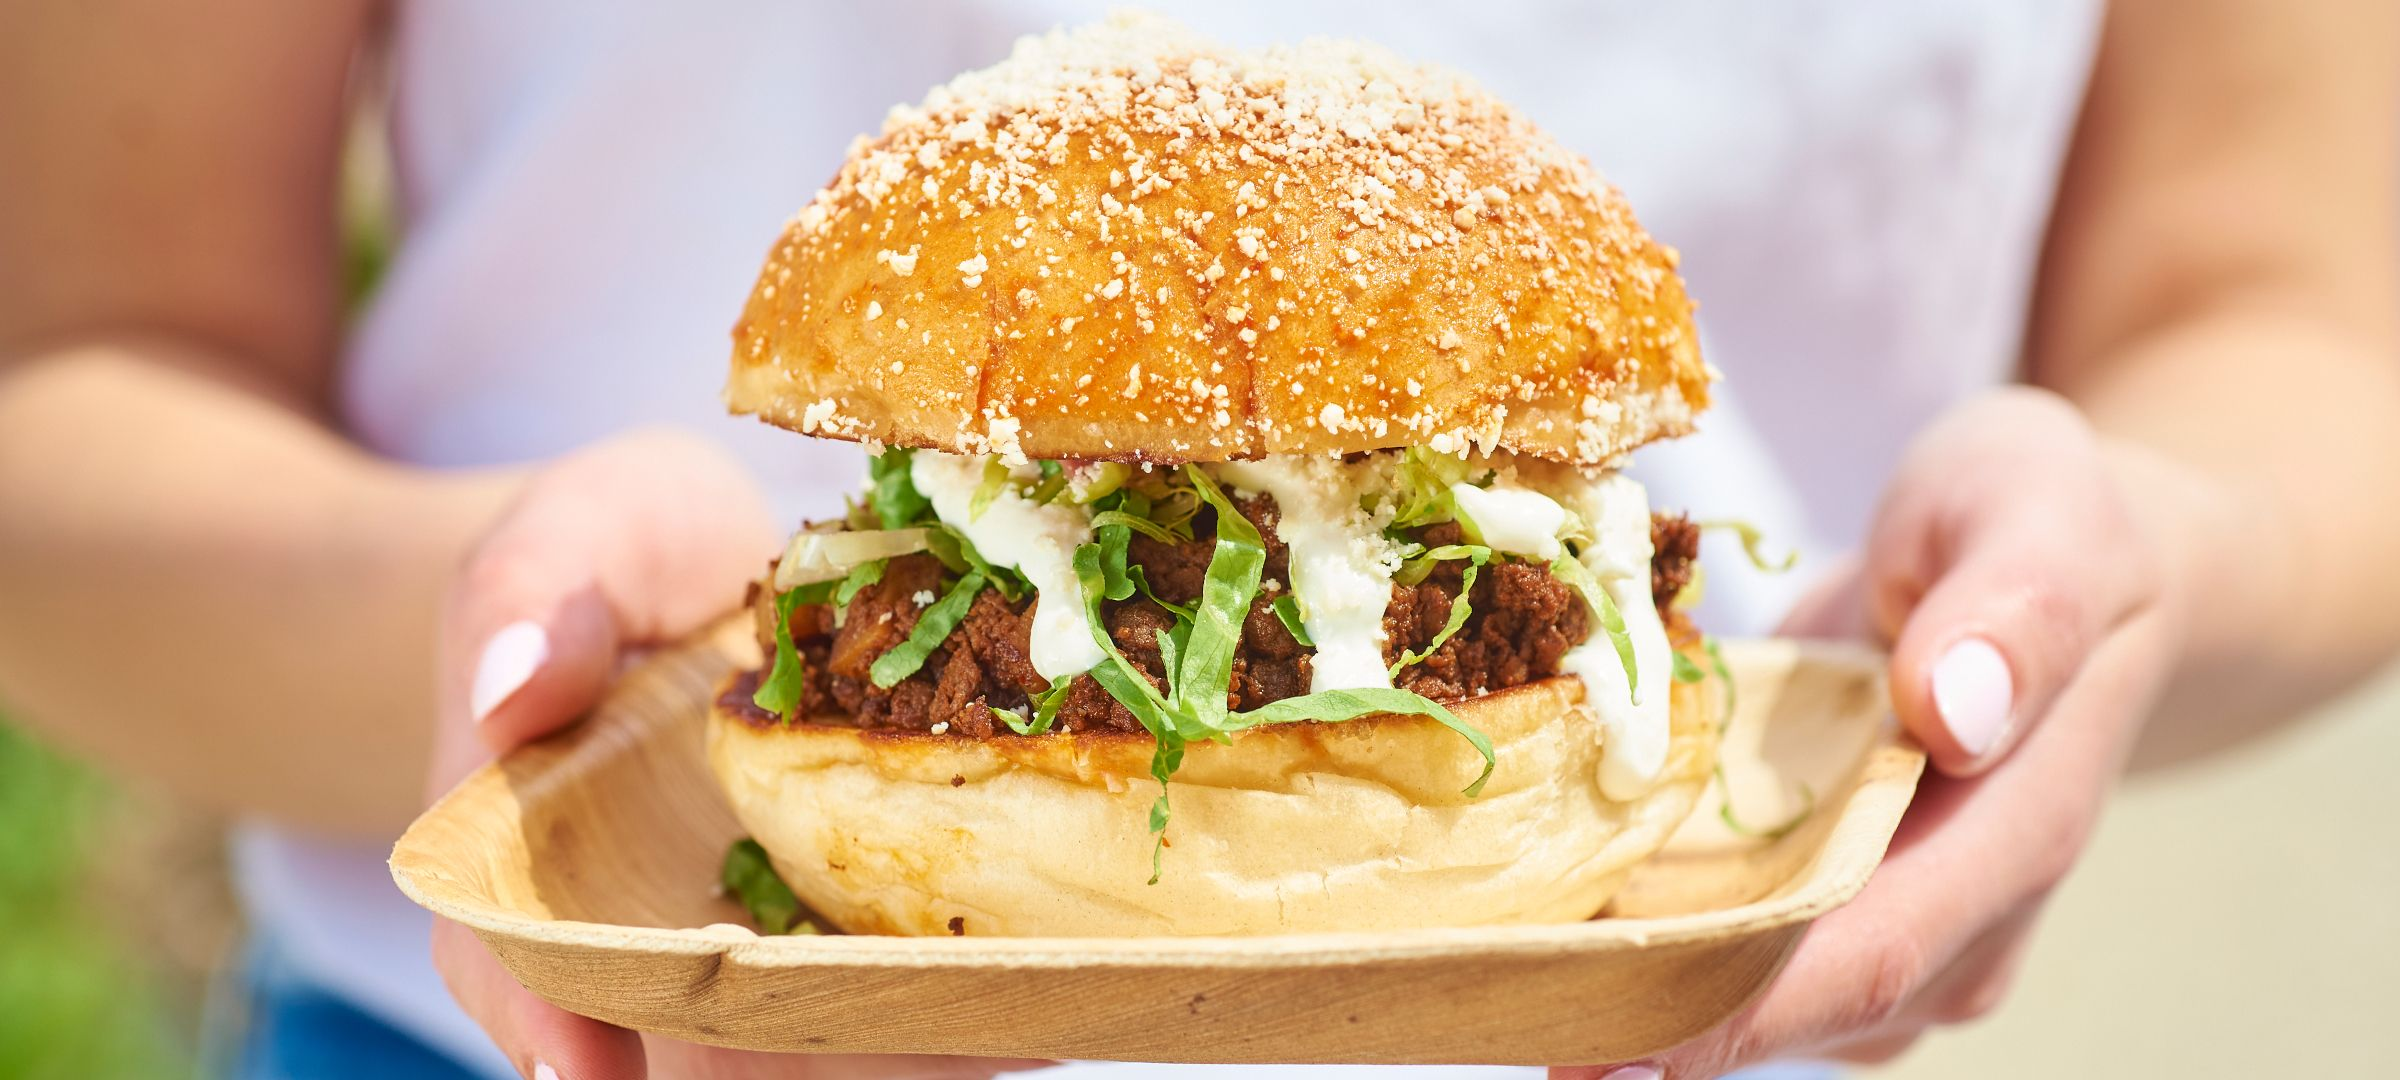 A view of someone holding a burger on a plate